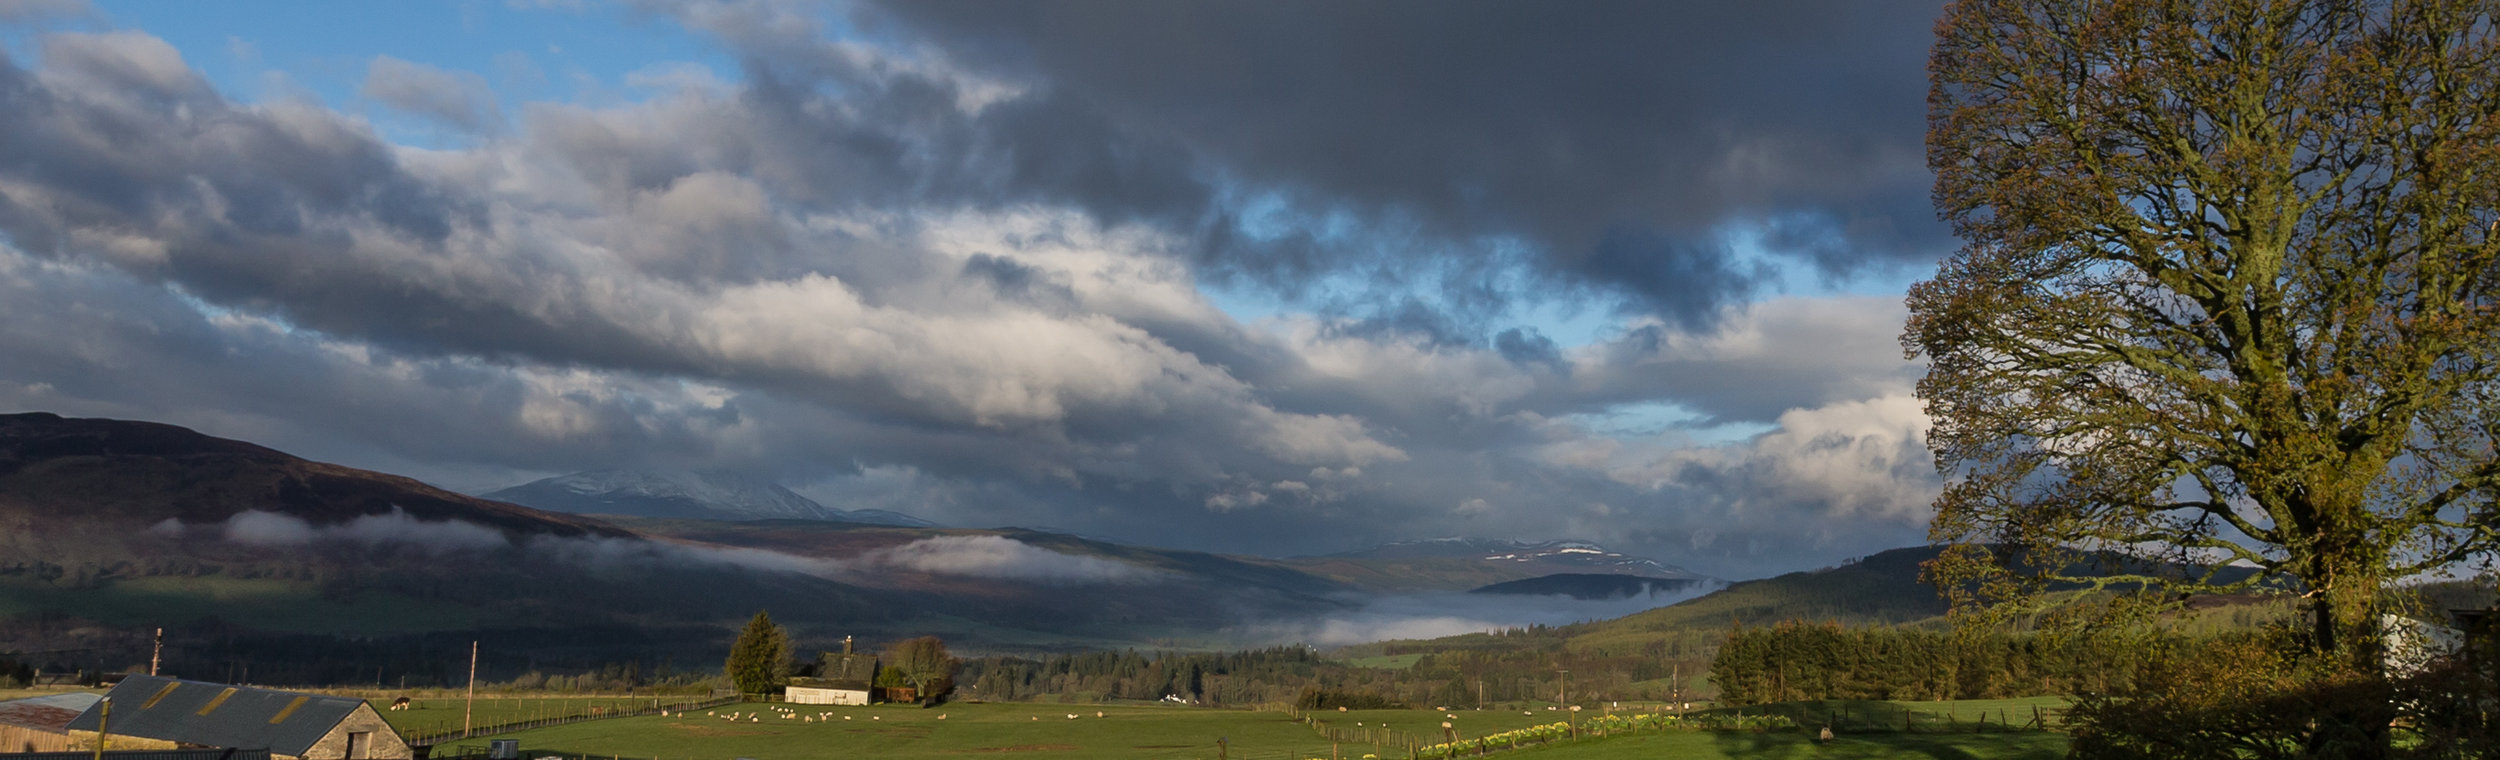 glen above pitlochry scotland 2015 © jennifer bailey